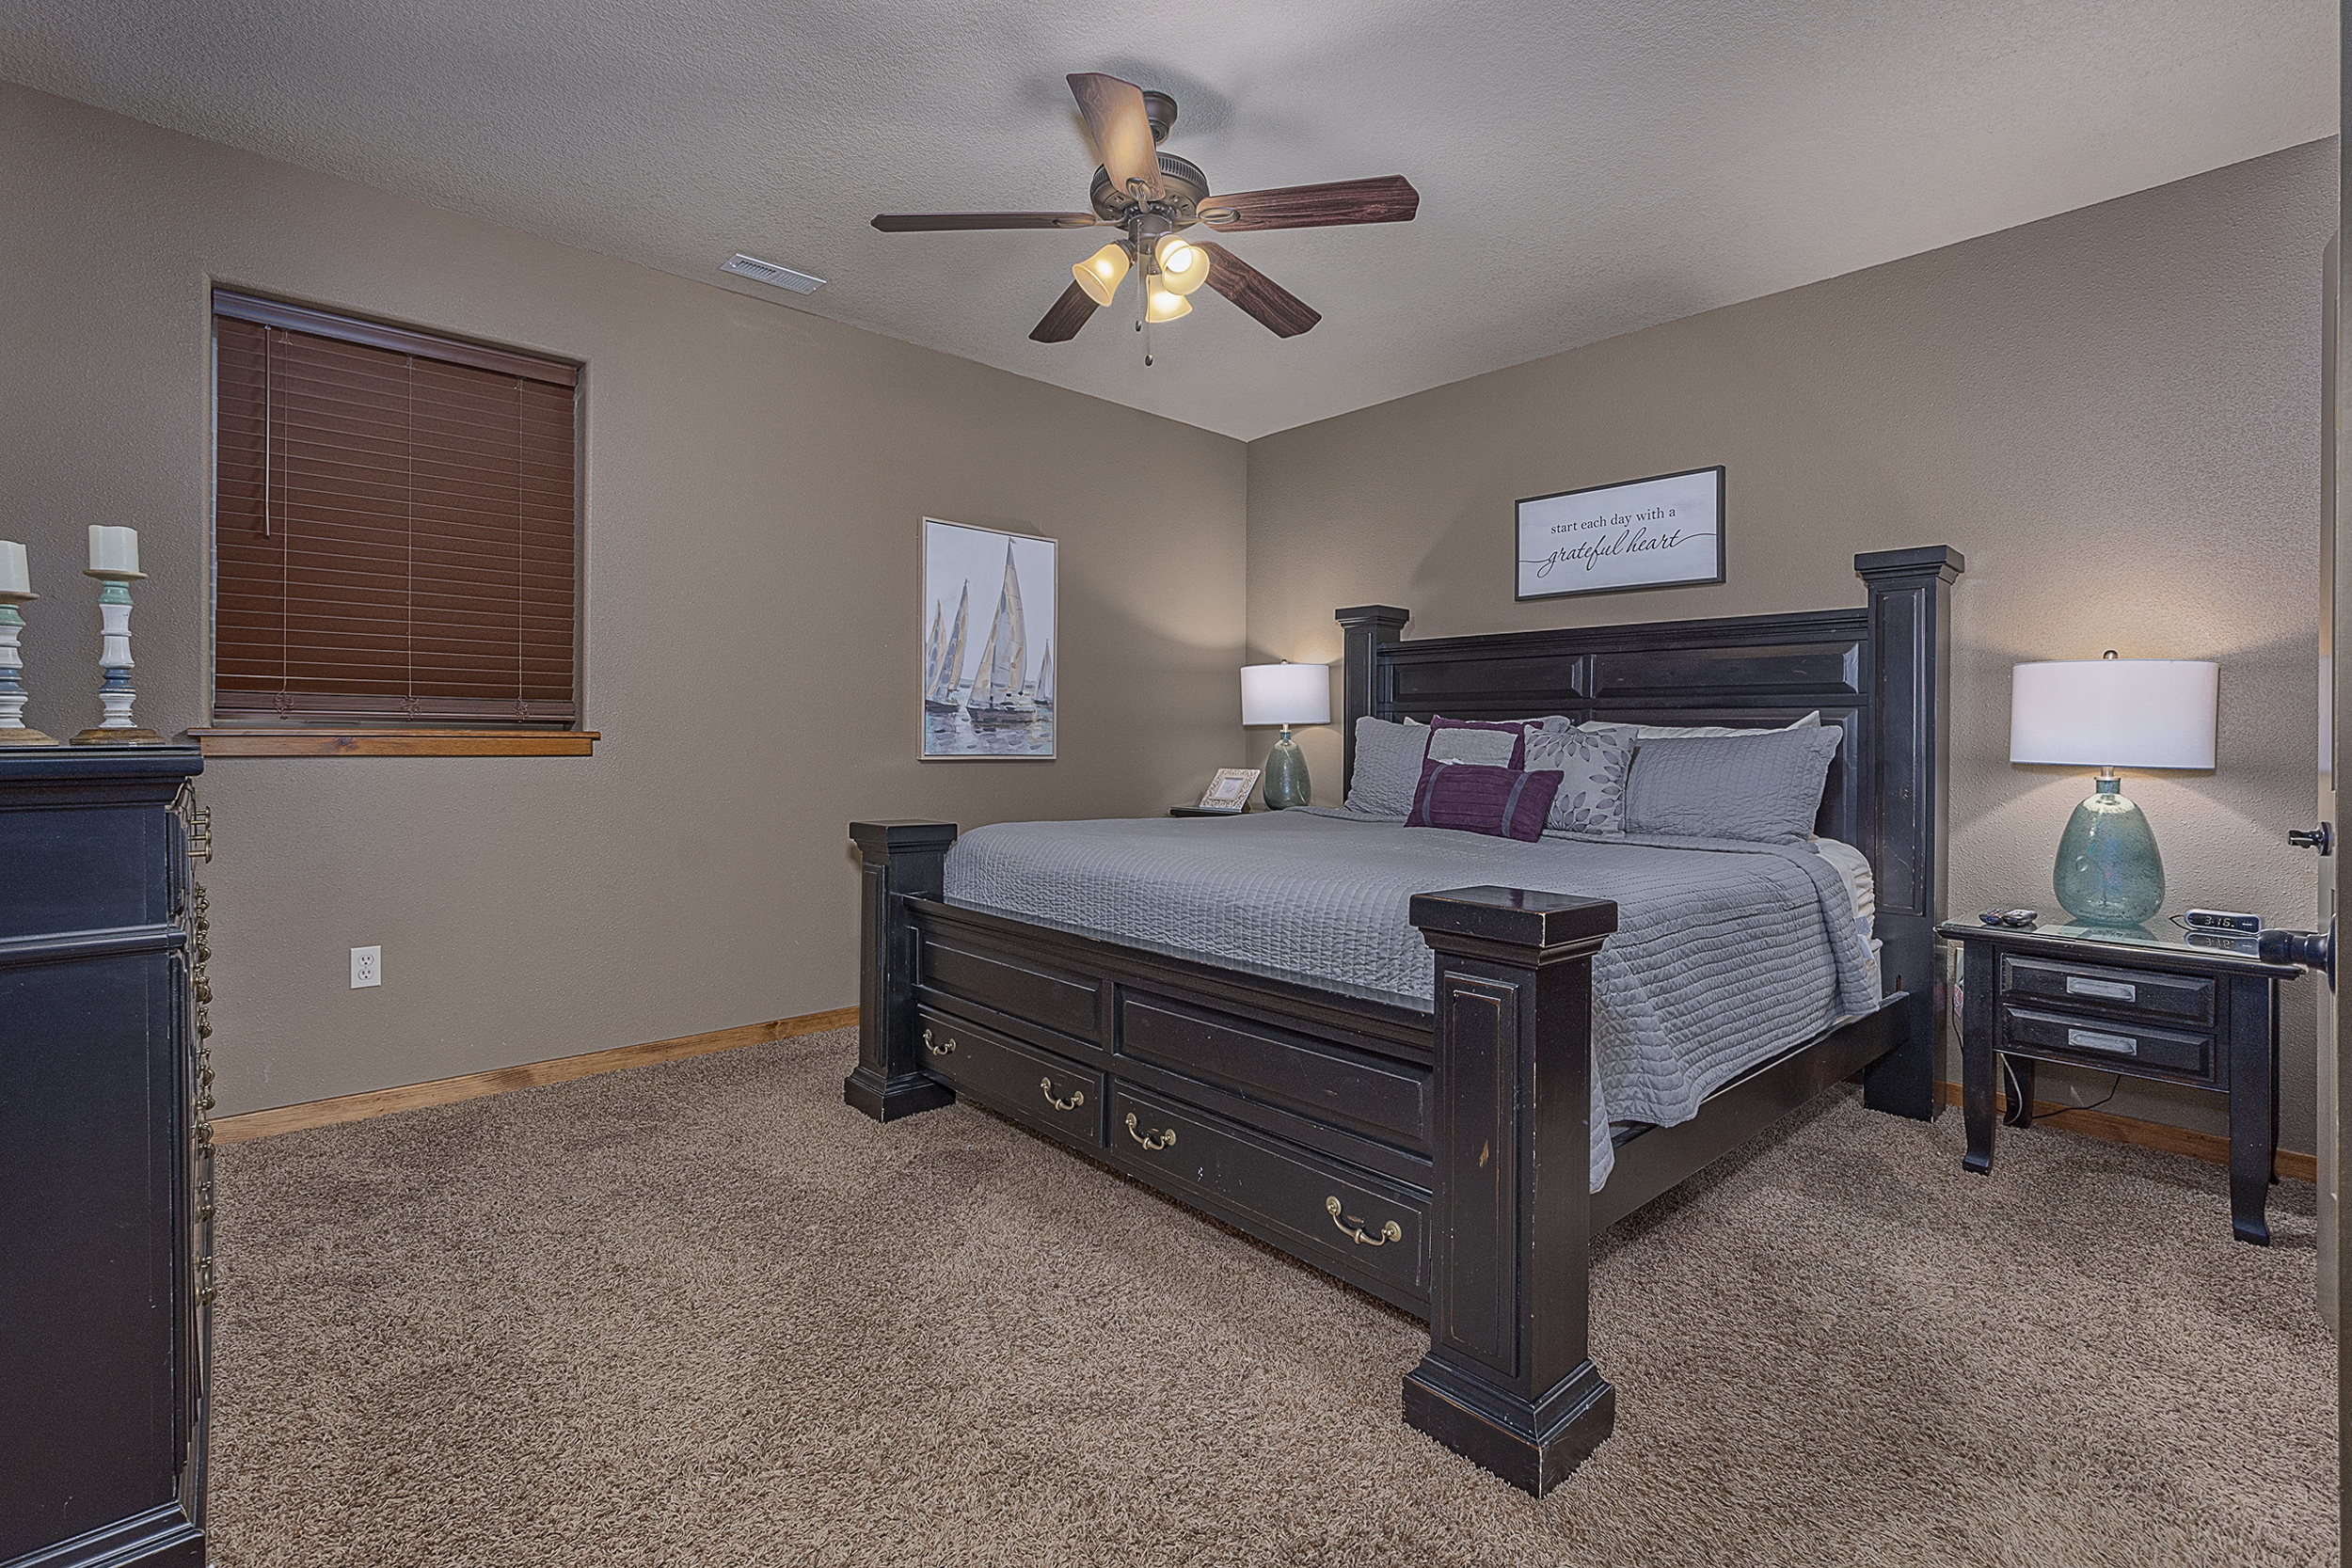 LL King Master Suite